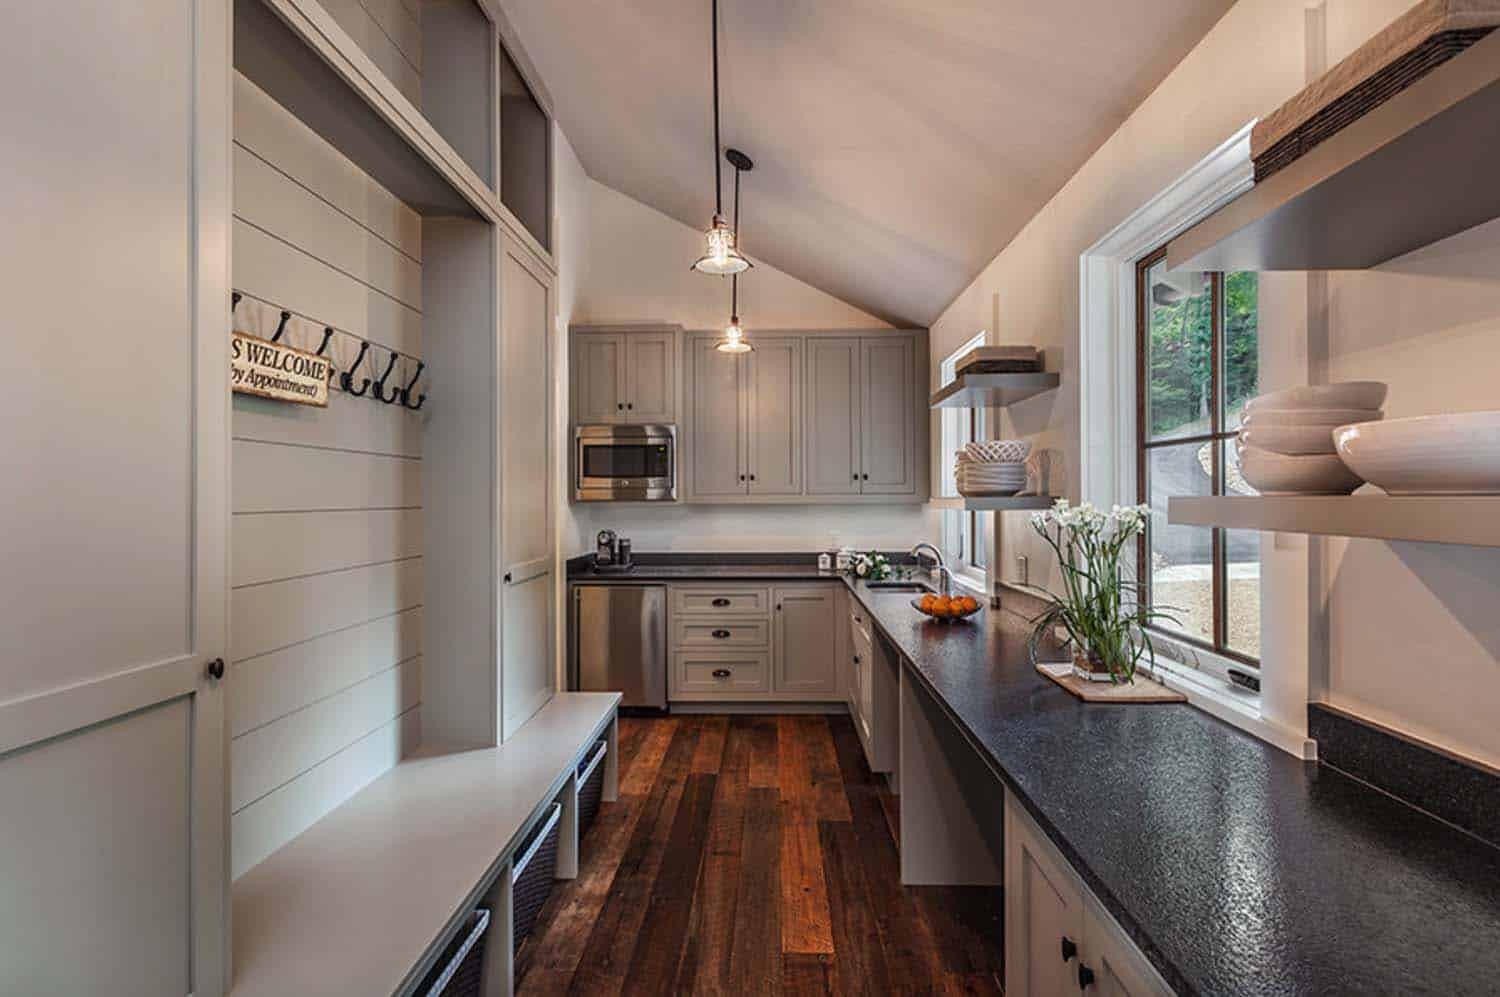 Bright Water Bay Lake House-Wright Design-08-1 Kindesign